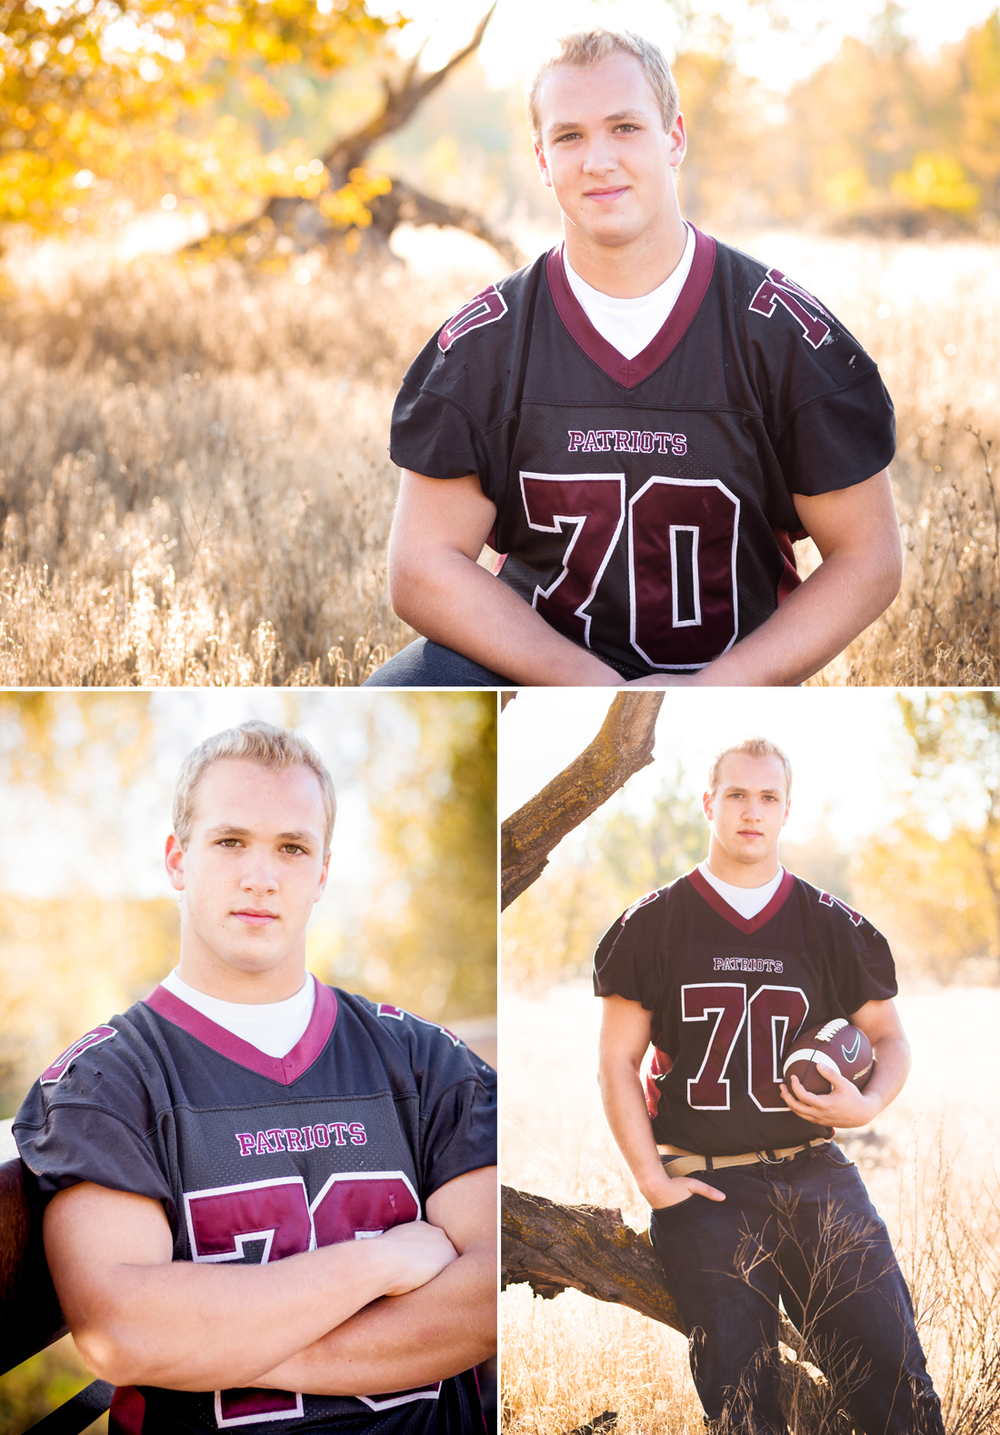 Boise Photographer McKenna Rachelle Photography Photographs High School Senior Football Player